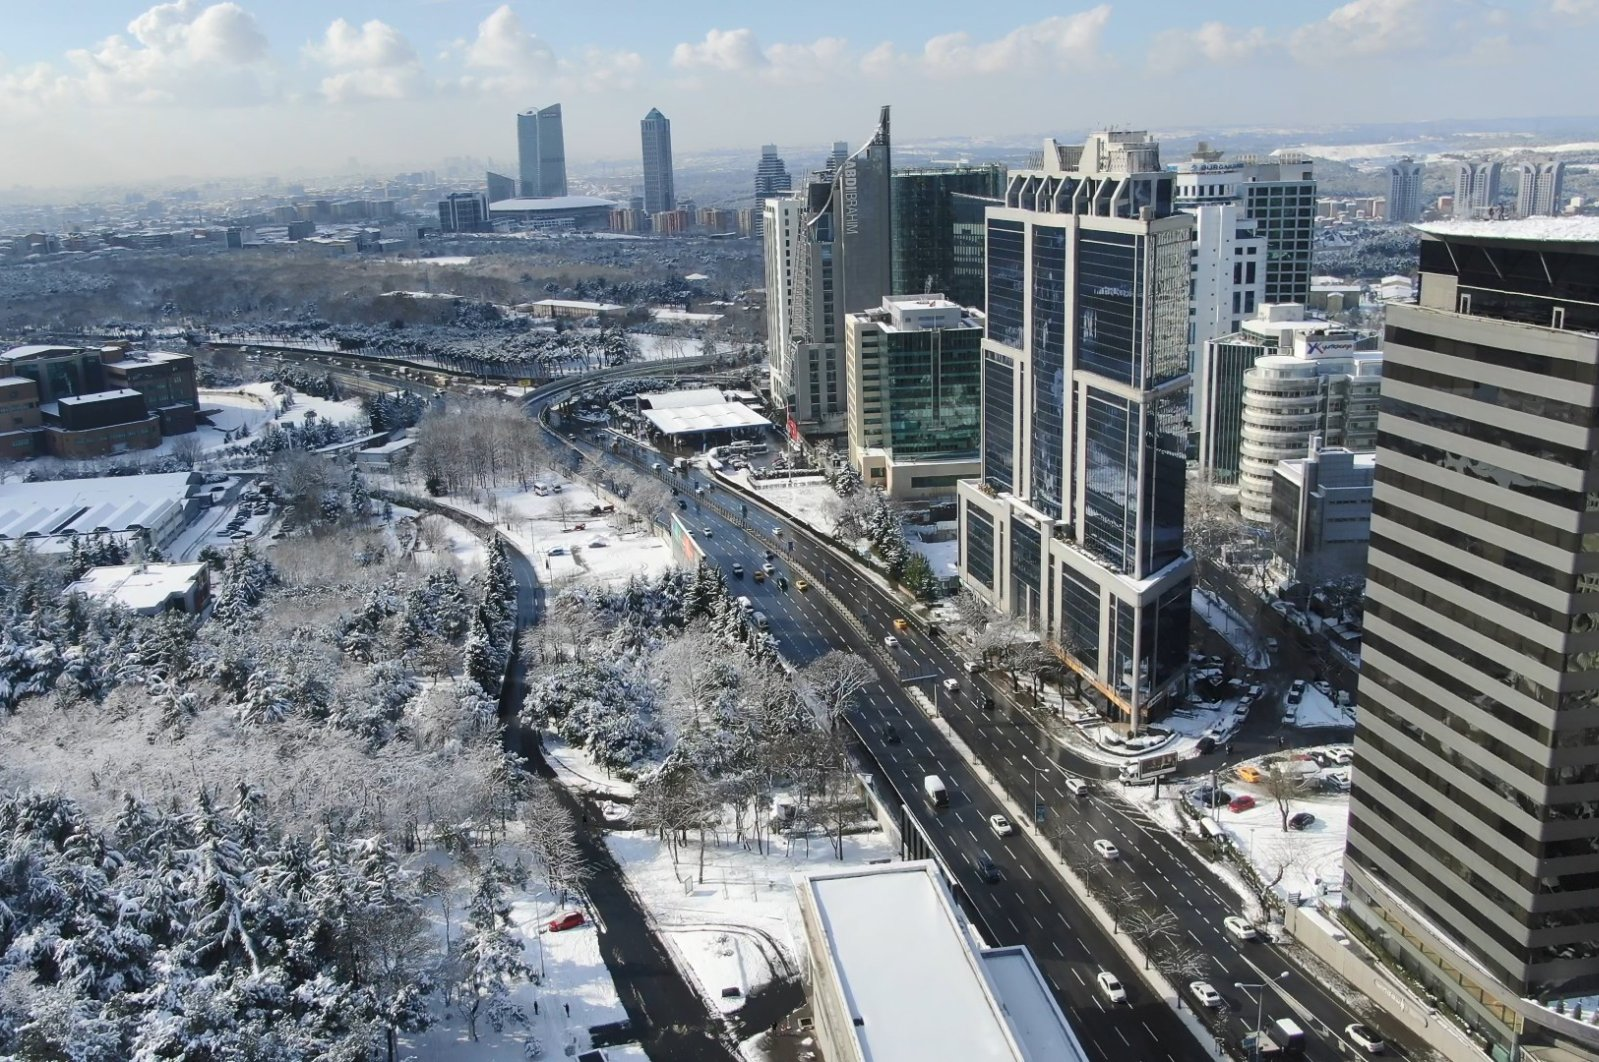 Snow covers the skyscrapers in the Maslak banking and financial district in Istanbul, Turkey, Jan. 18, 2021. (DHA Photo)